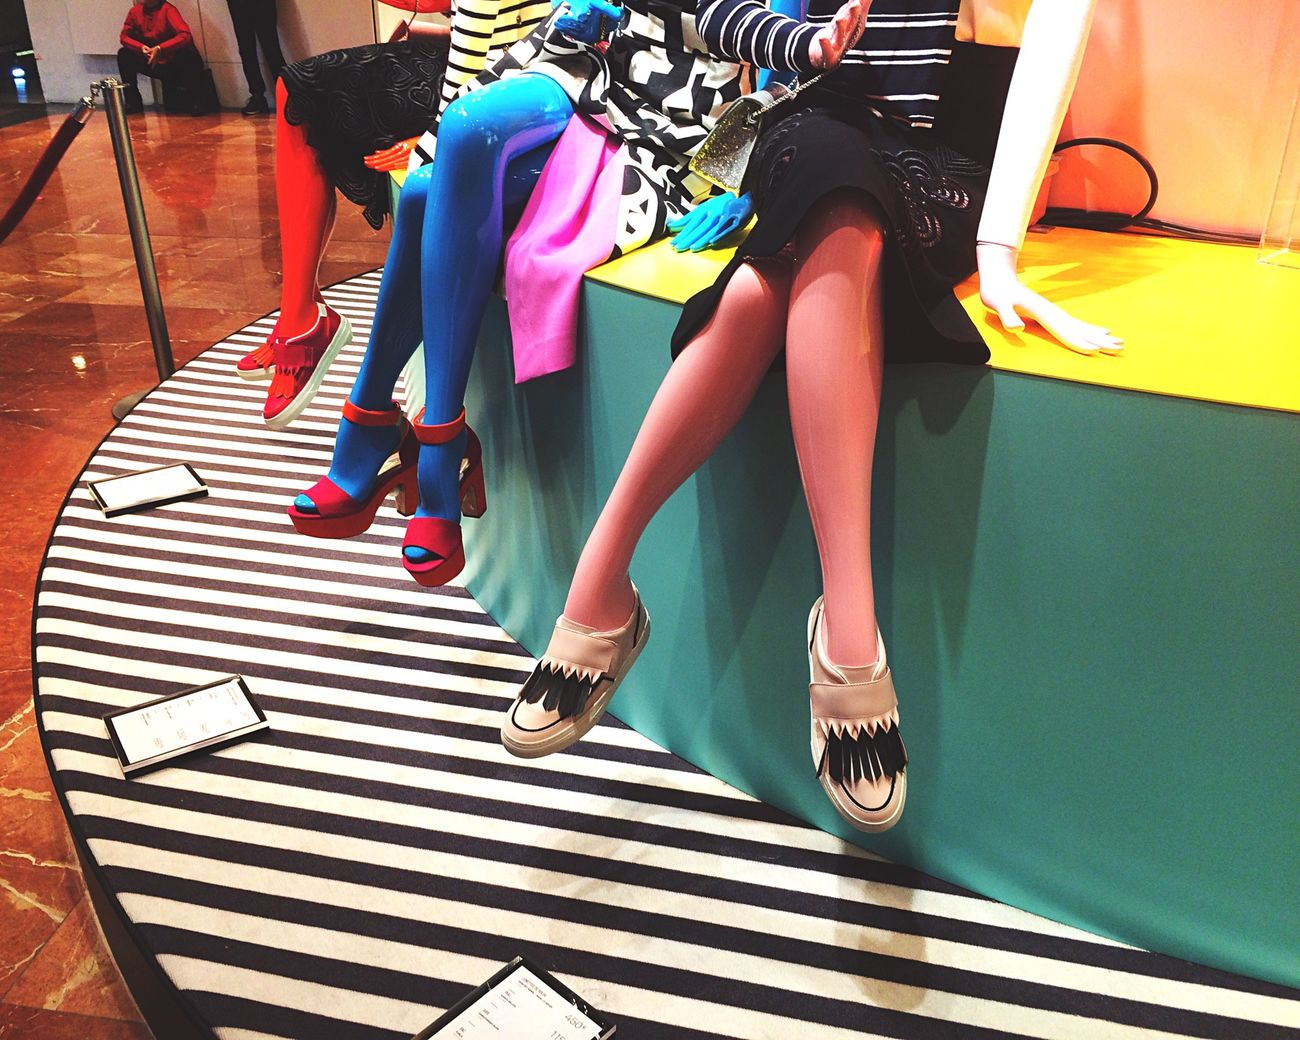 Galeries Lafayette Fashion Colorful Legs Shoes Paris Models Store Mode Multicolors  Everyday Lives 9e Urban Stripes Everywhere